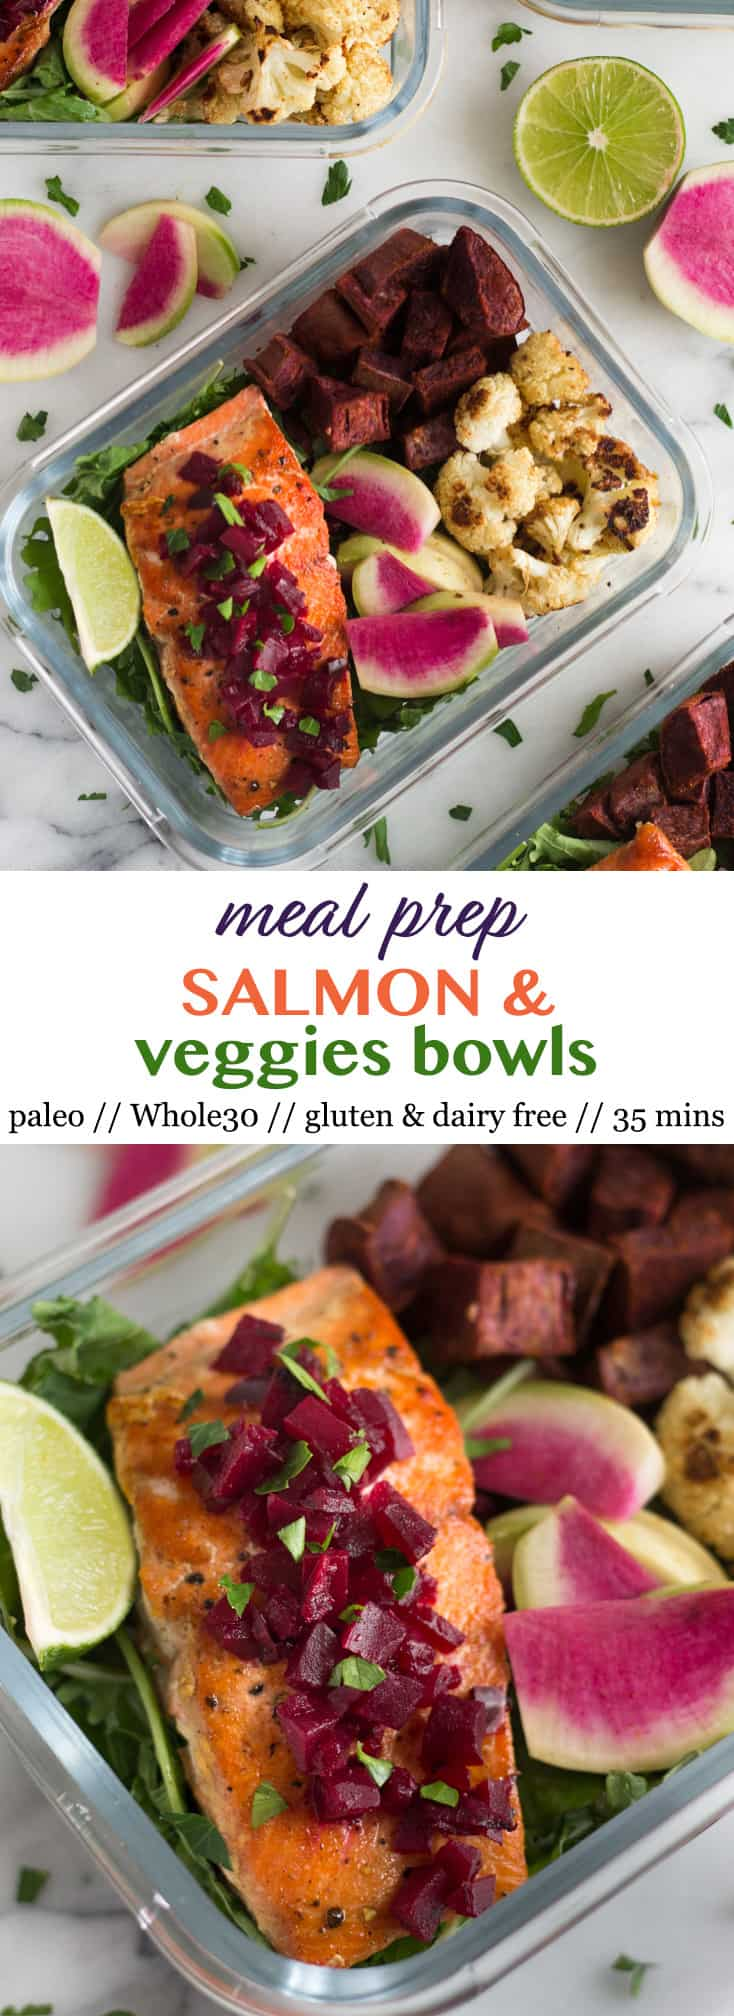 Pinterest image for Meal Prep Salmon and Veggies Bowls